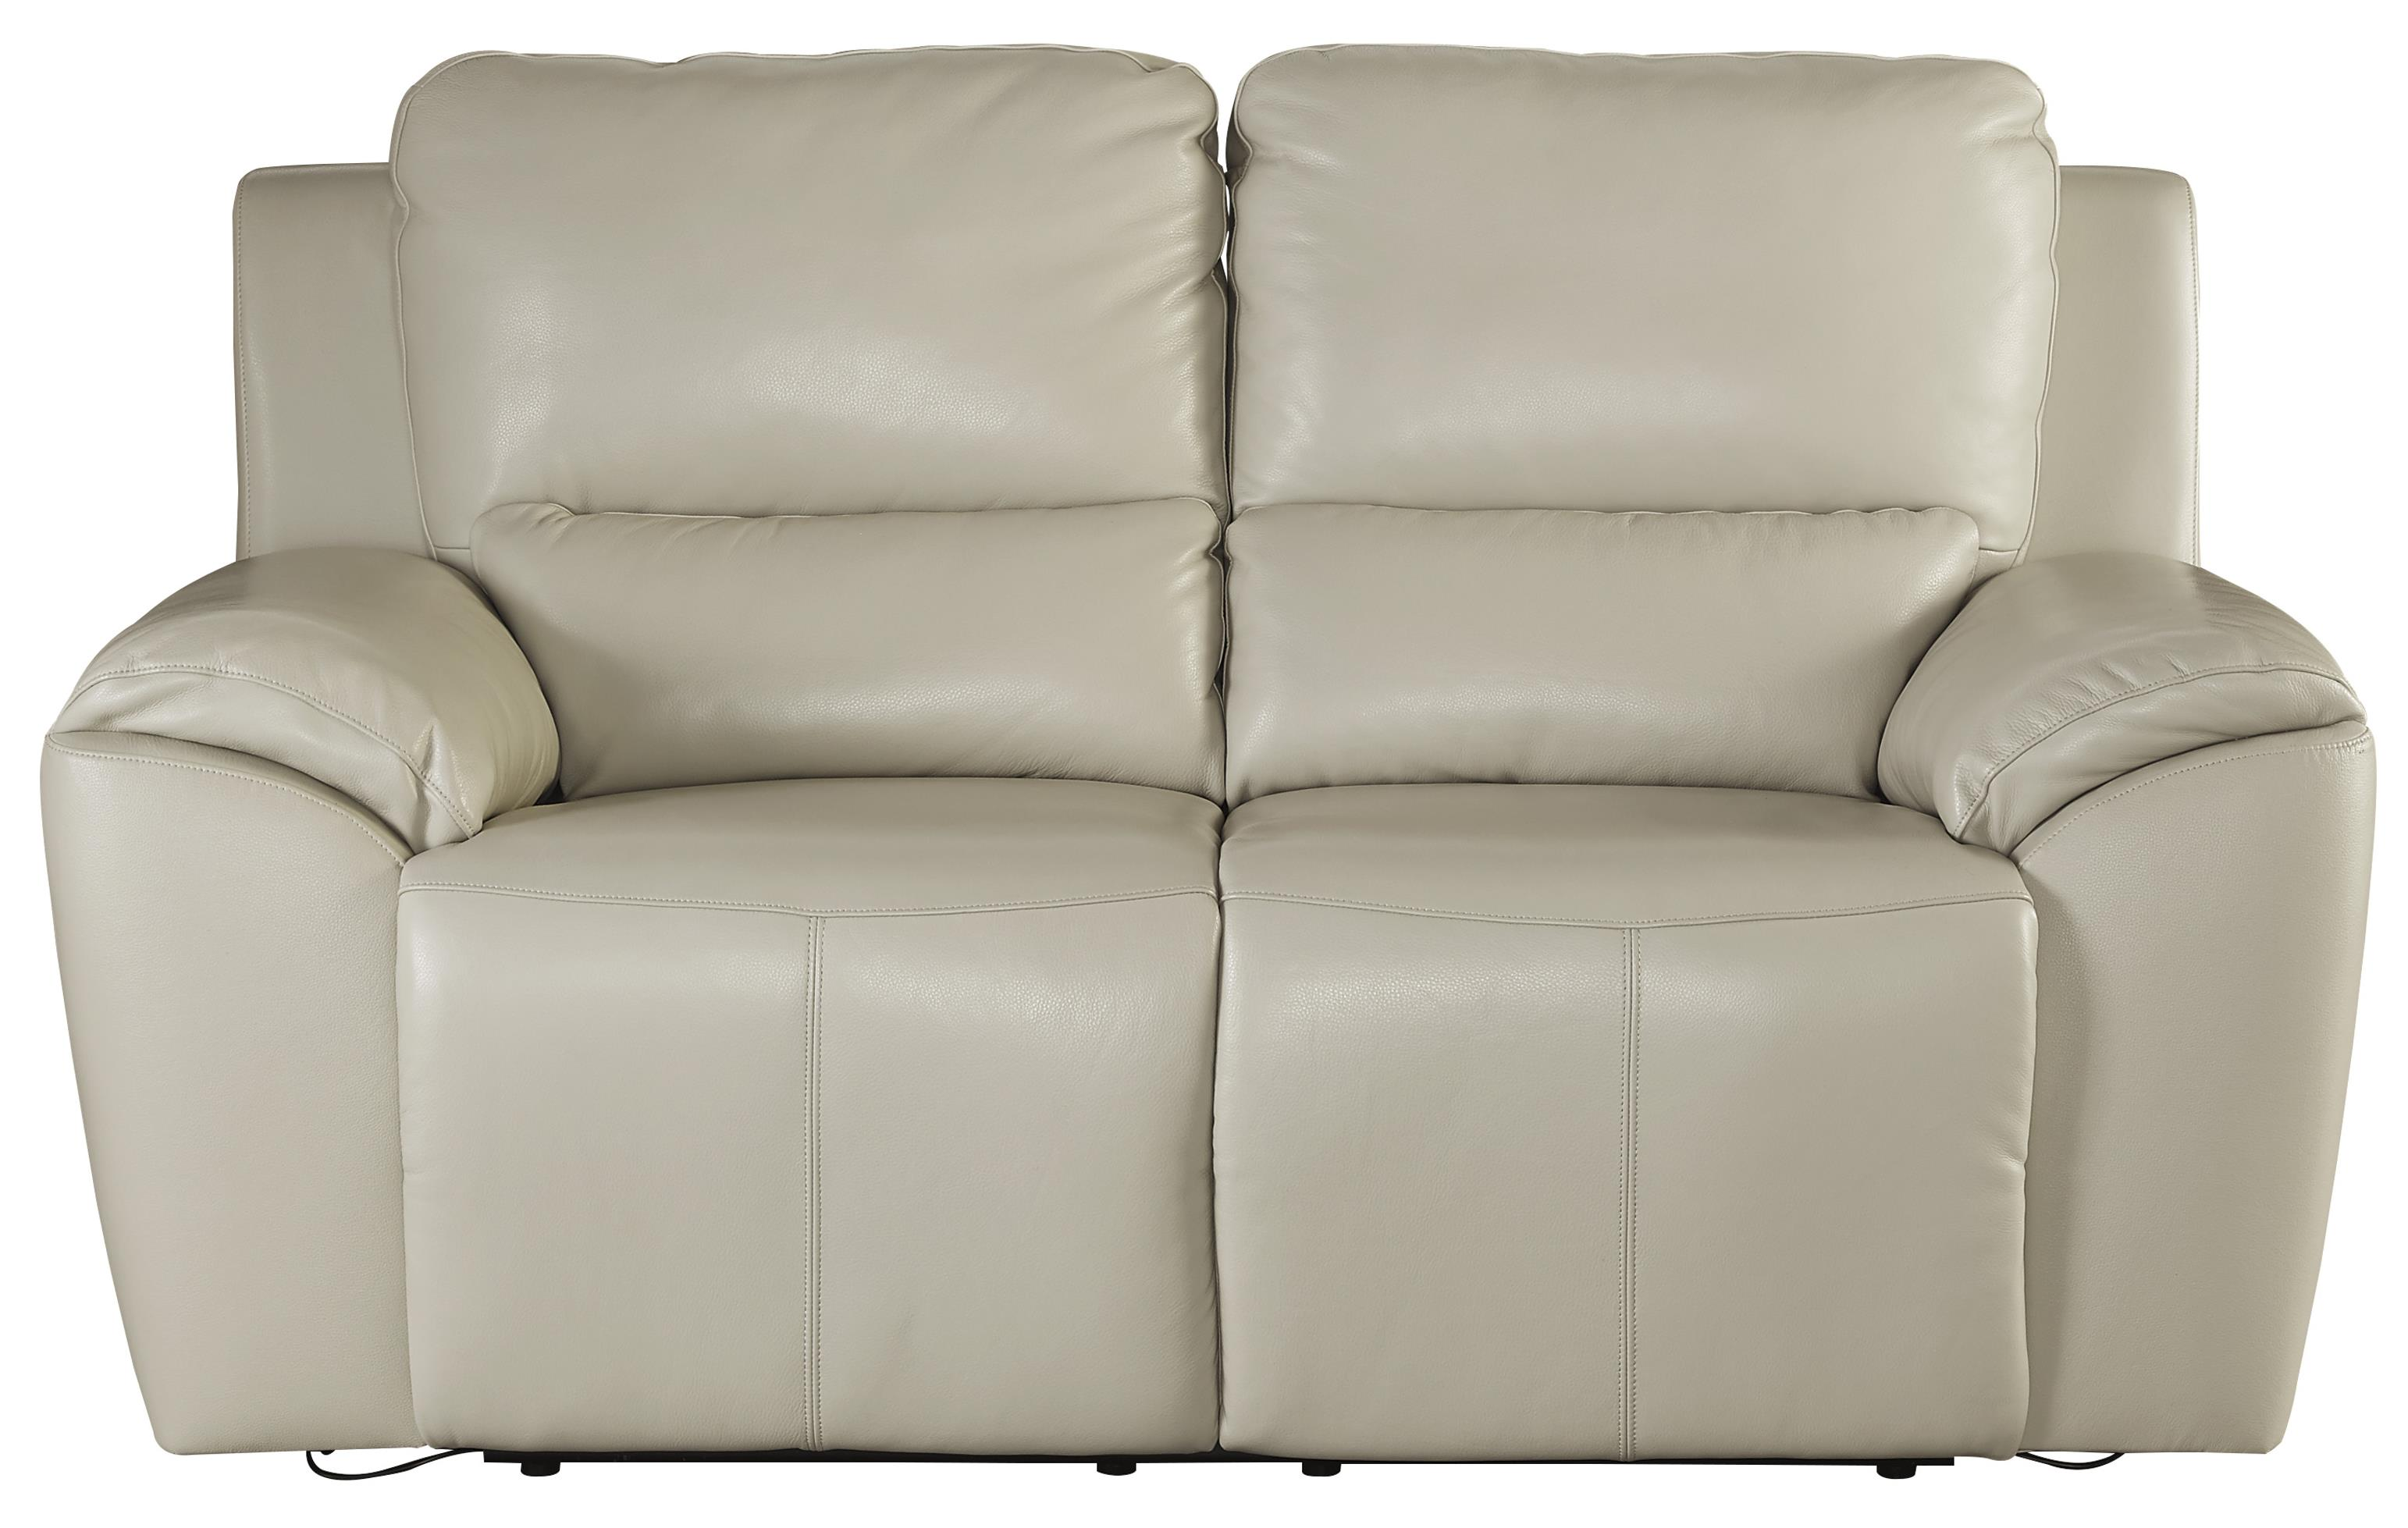 Signature Design by Ashley Valeton Reclining Power Loveseat - Item Number: U7350074